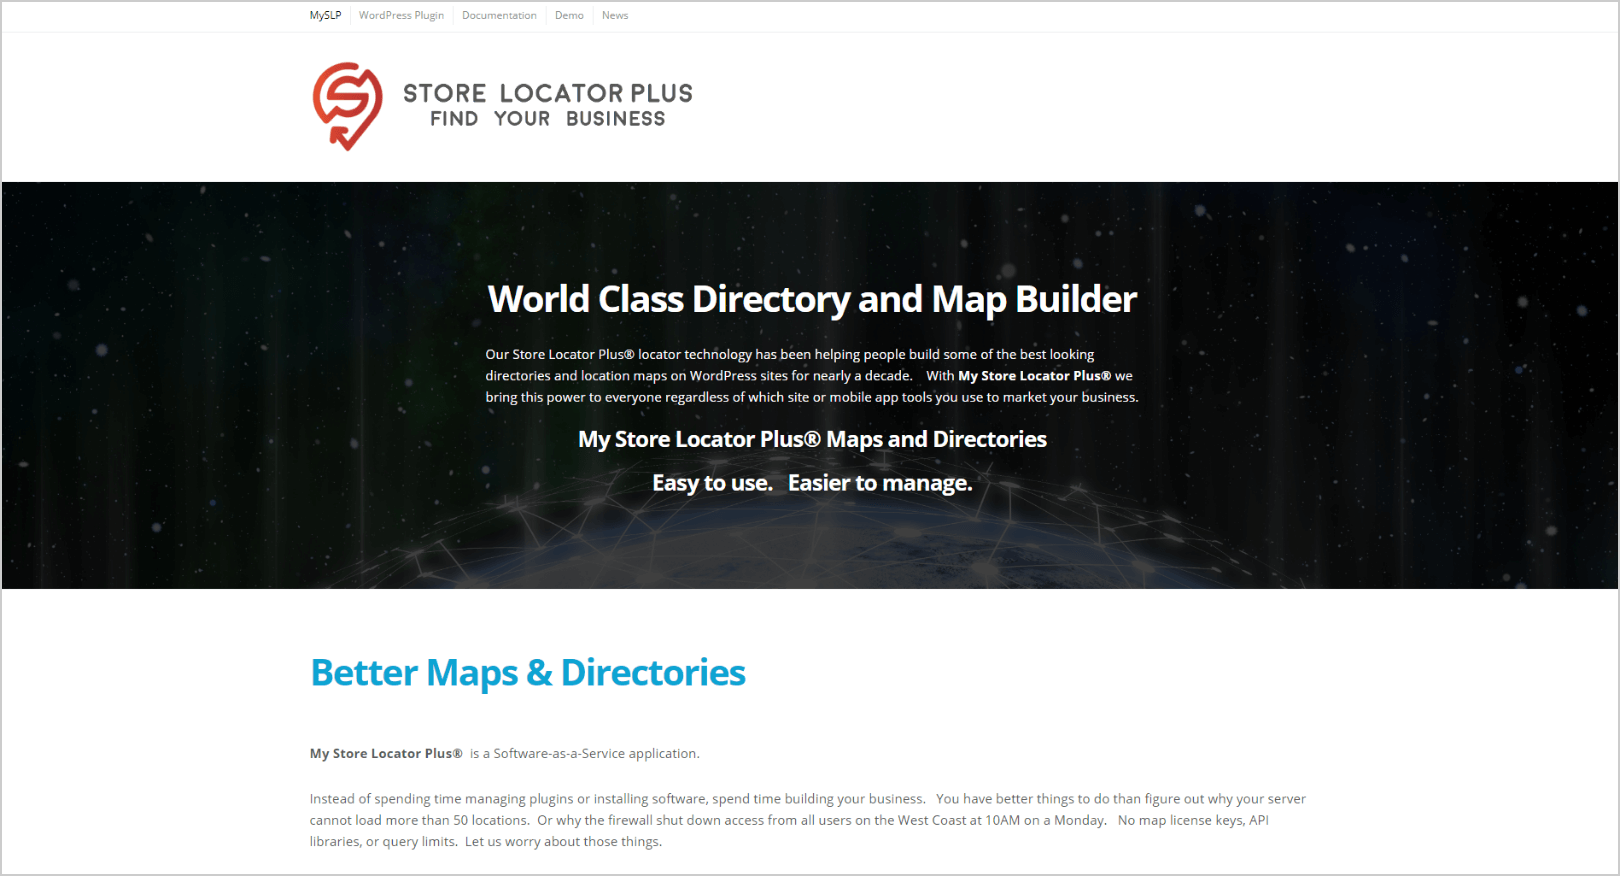 Store Locator Plus is a WordPress Multisite-based software-as-a-service (SaaS)